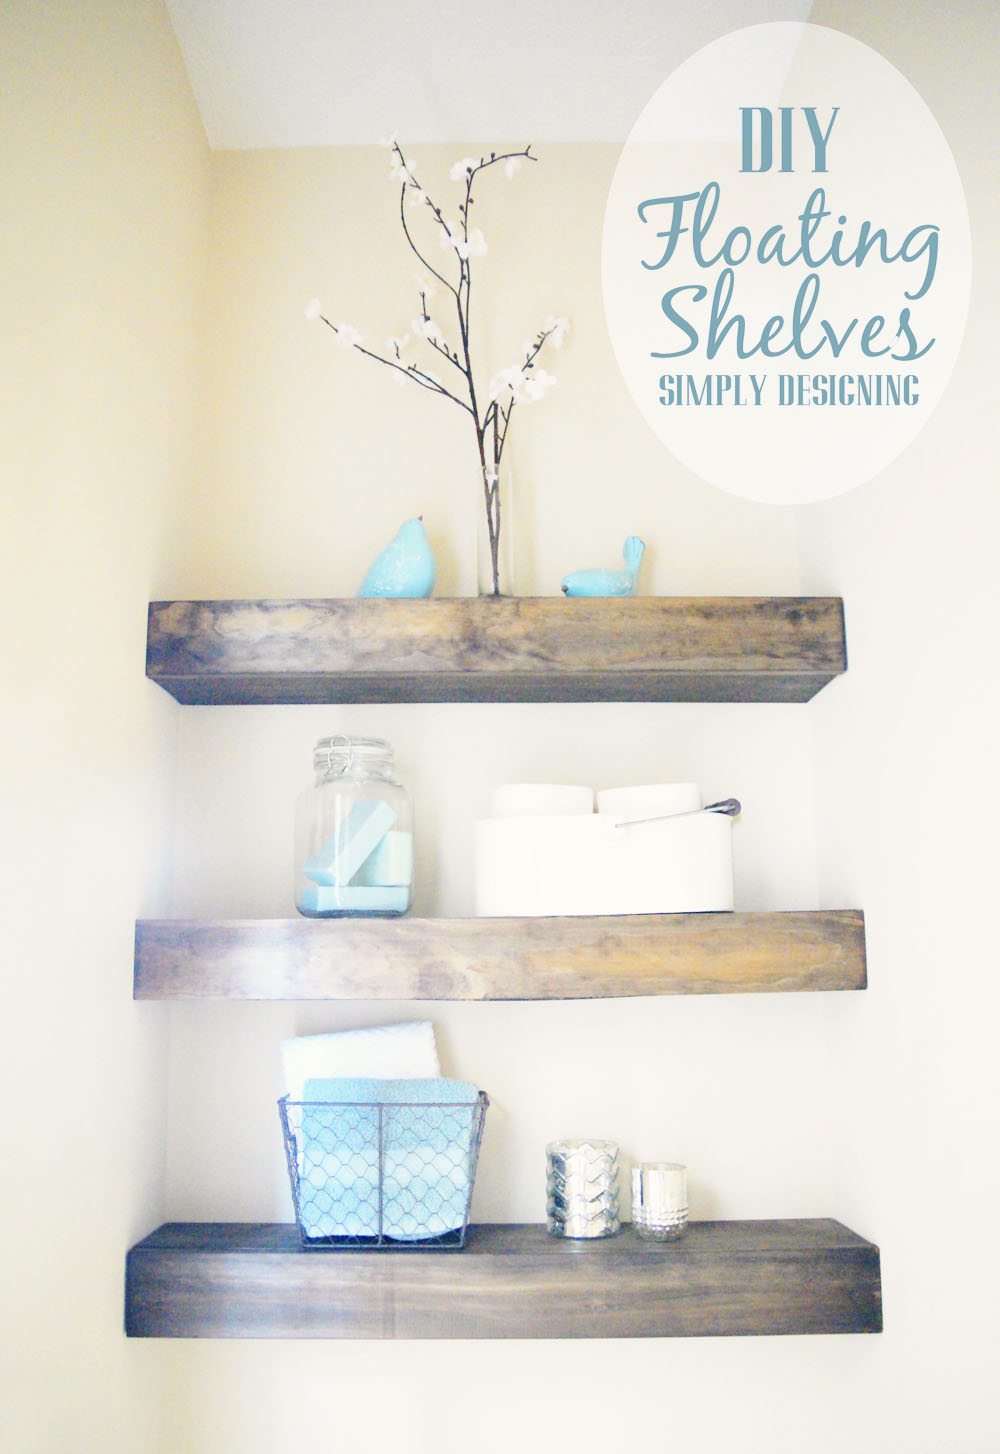 diy floating shelves how measure cut and install wood shelf bathroom are really easy make they the perfect rustic brackets hardware white styling open countertop support small